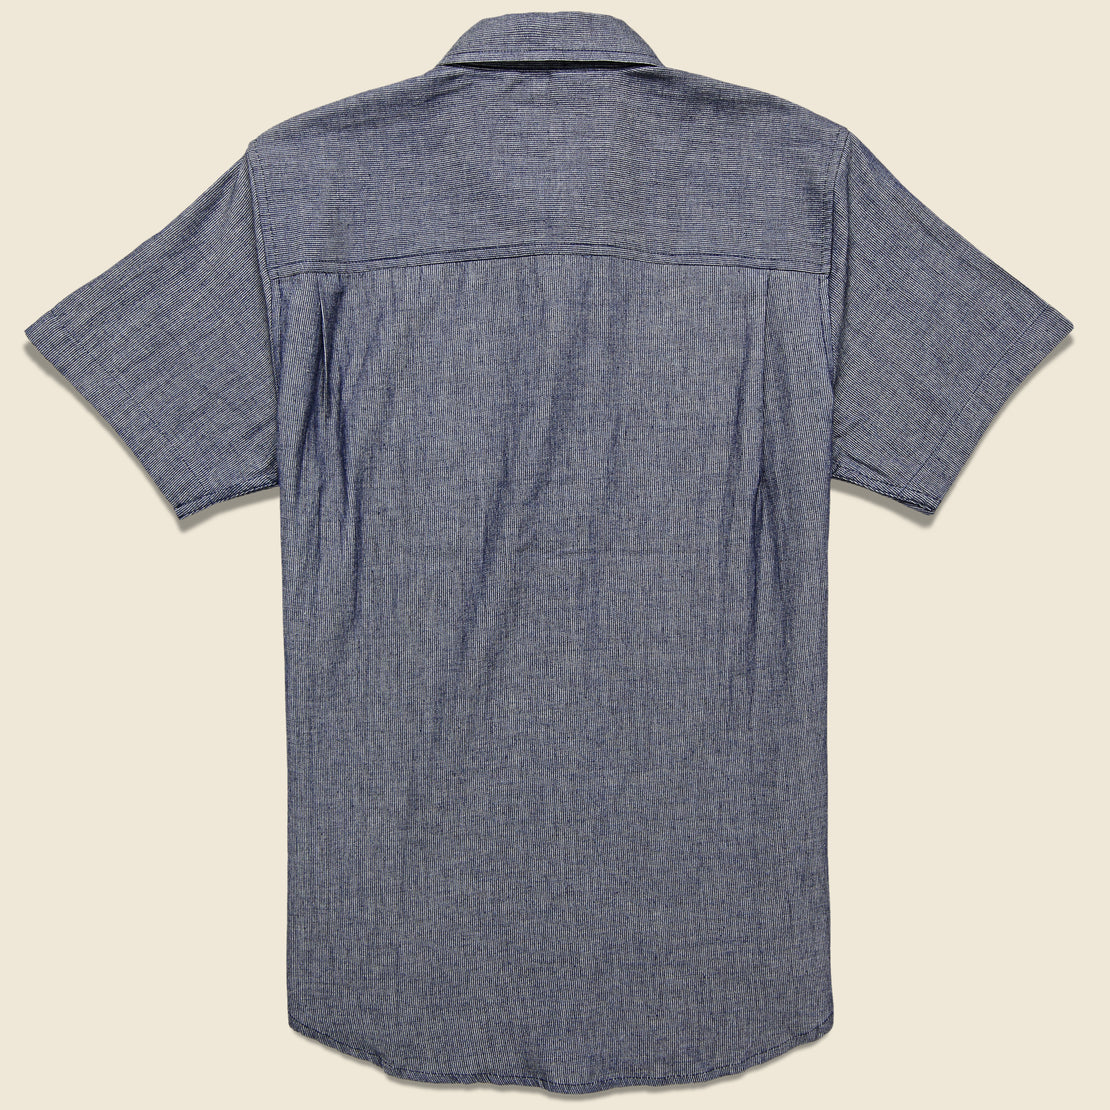 Harbor Chambray Stripe Shirt - Grey/Blue